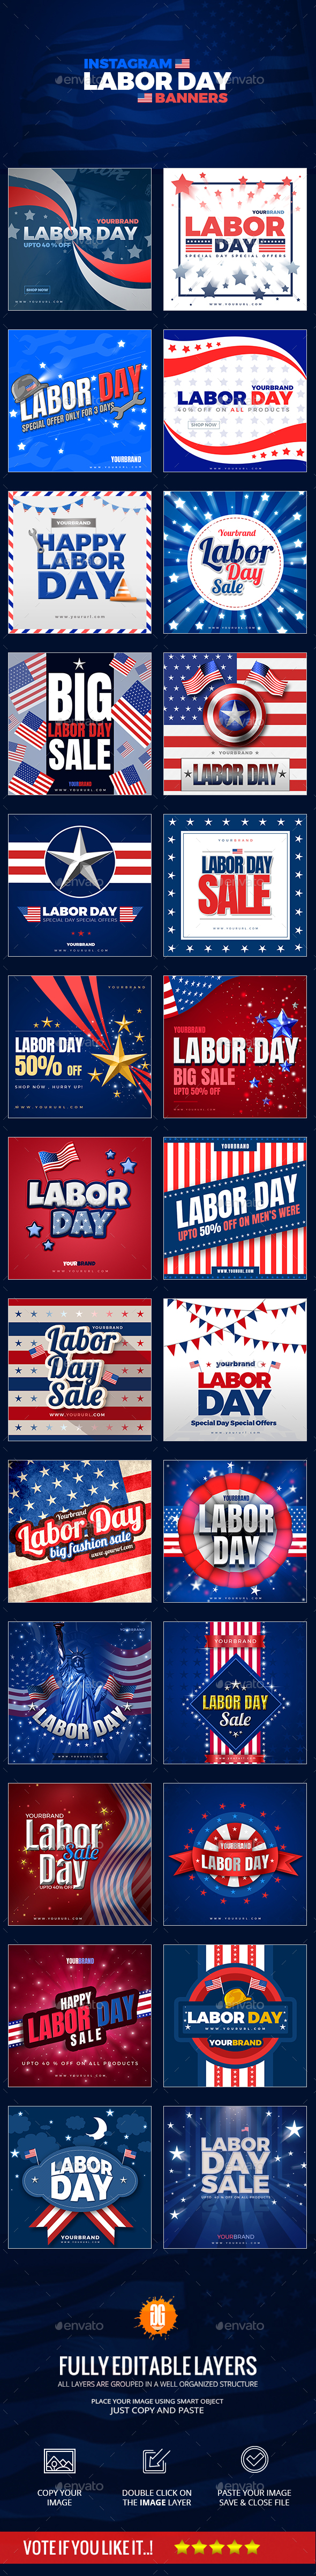 26 Labor Day Instagram Banners - Social Media Web Elements